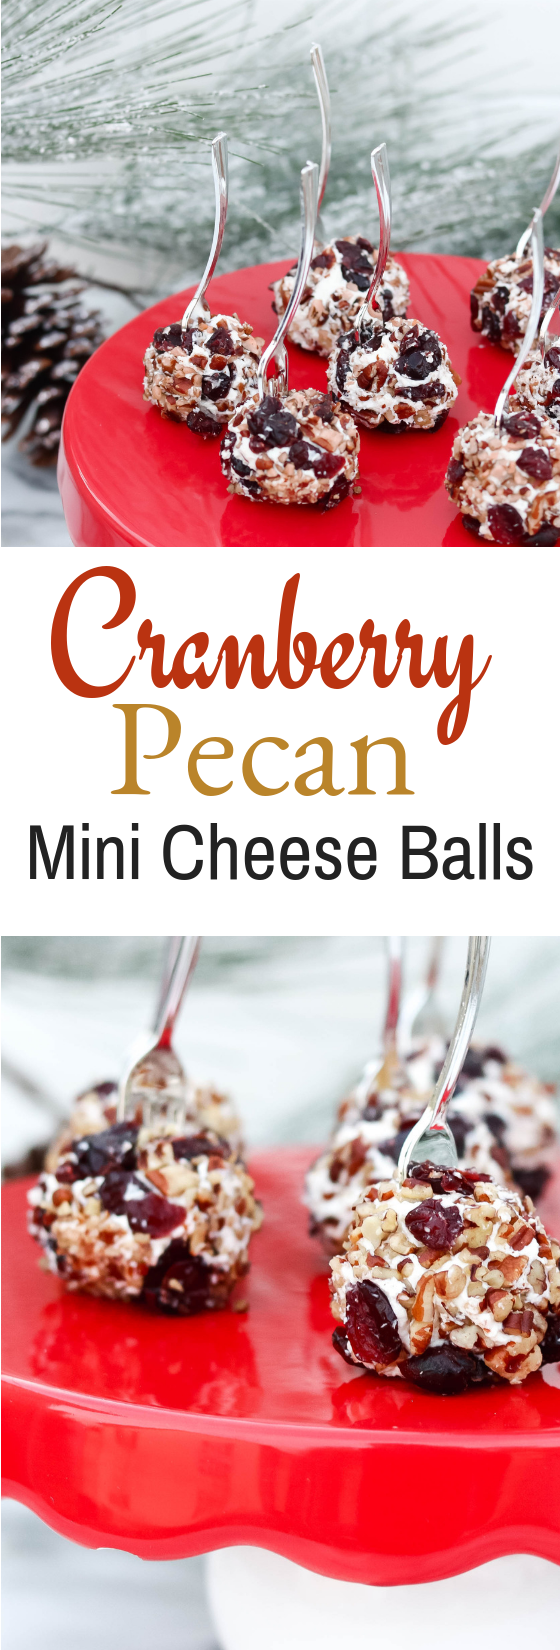 Cranberry Pecan Mini Cheese Balls.#cheeseball #appetizer #cranberry #holidayrecipe